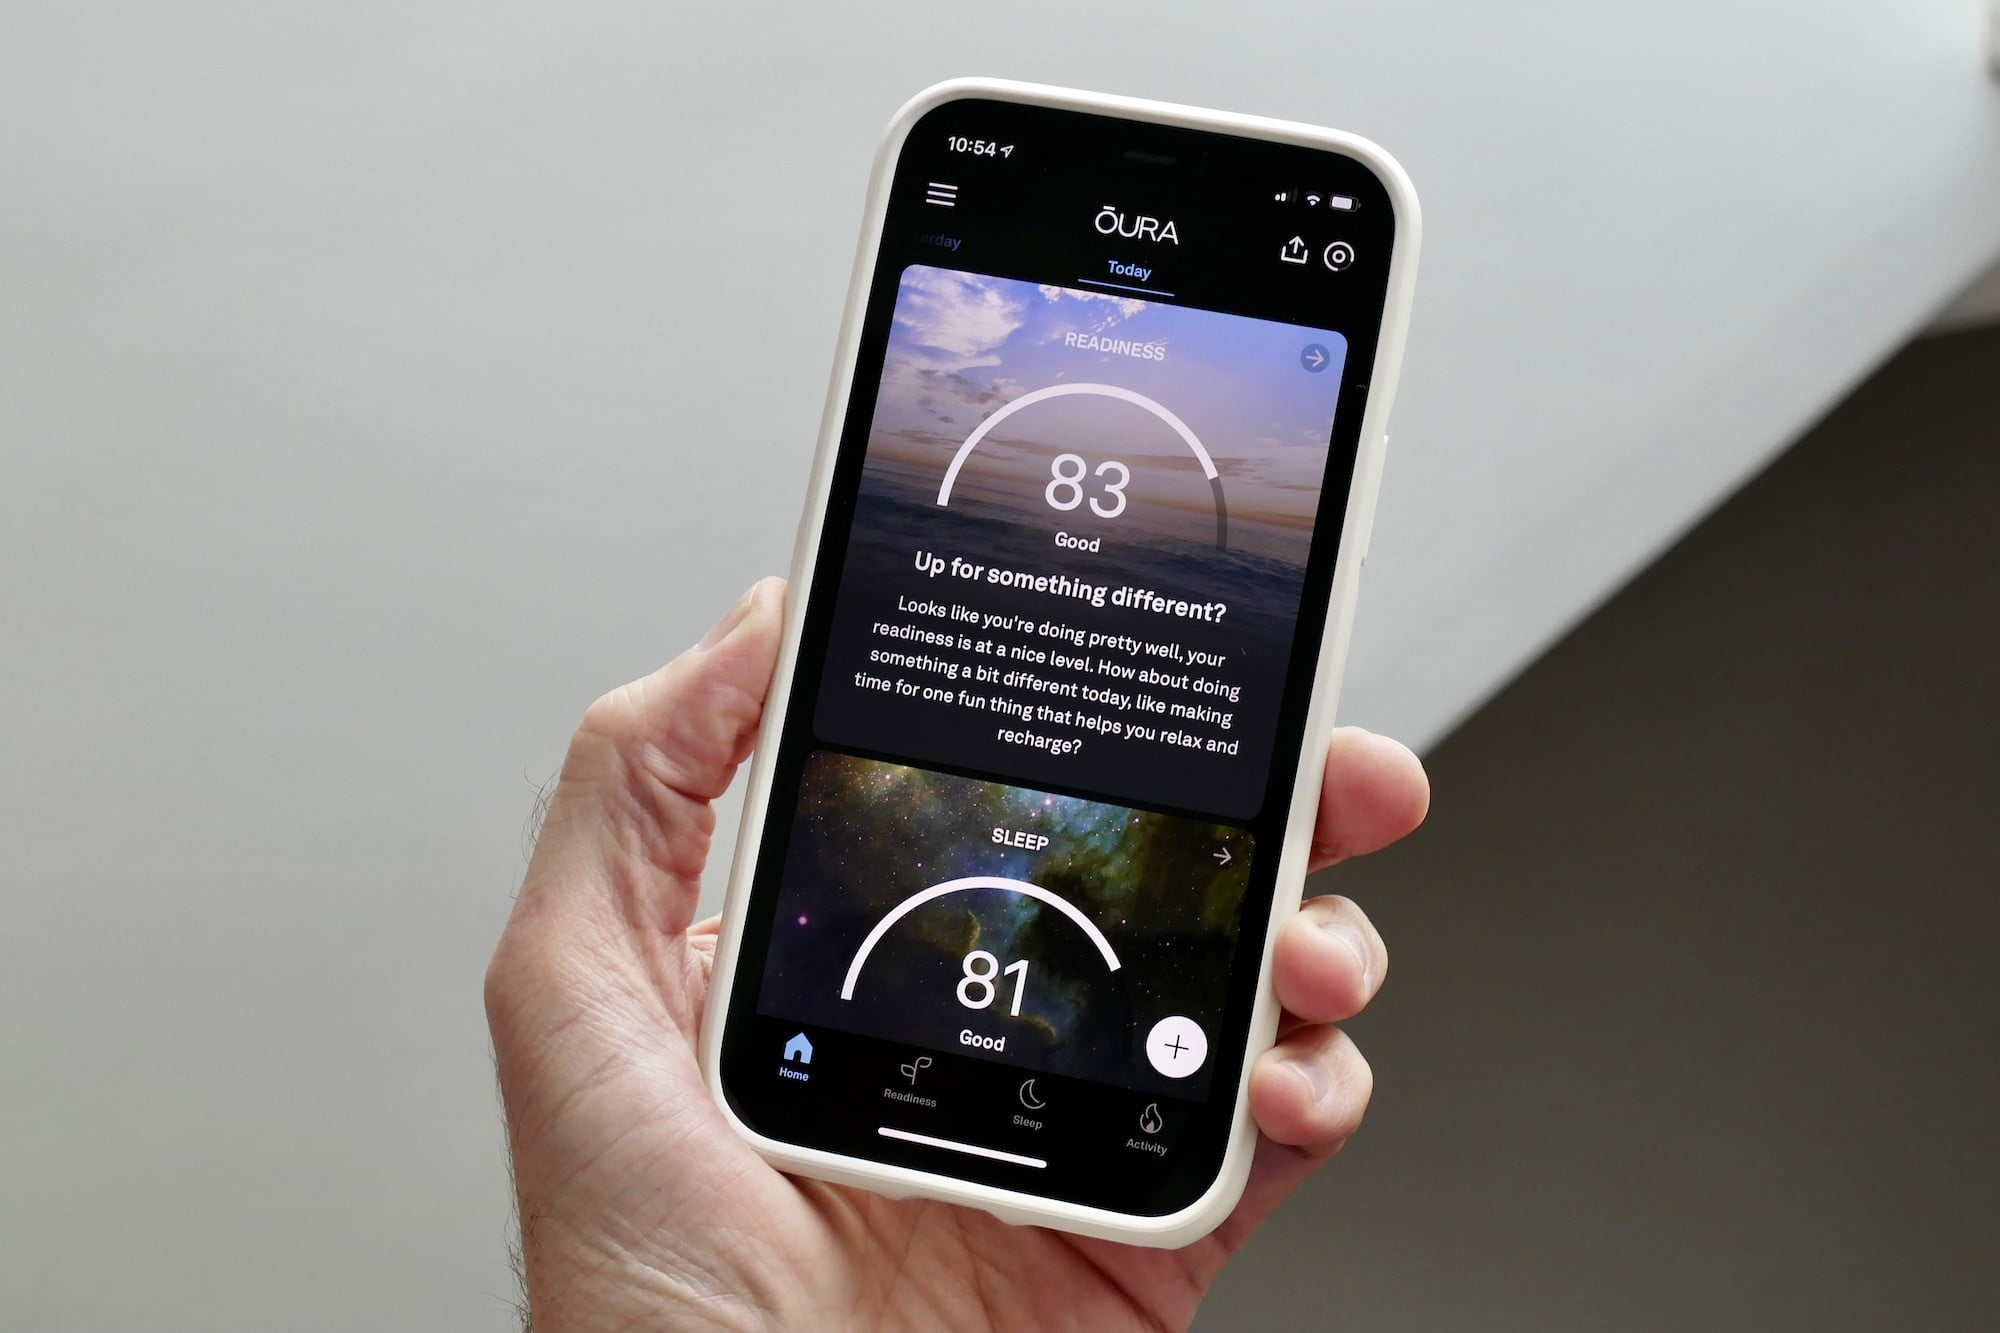 The Oura Ring app's main screen.